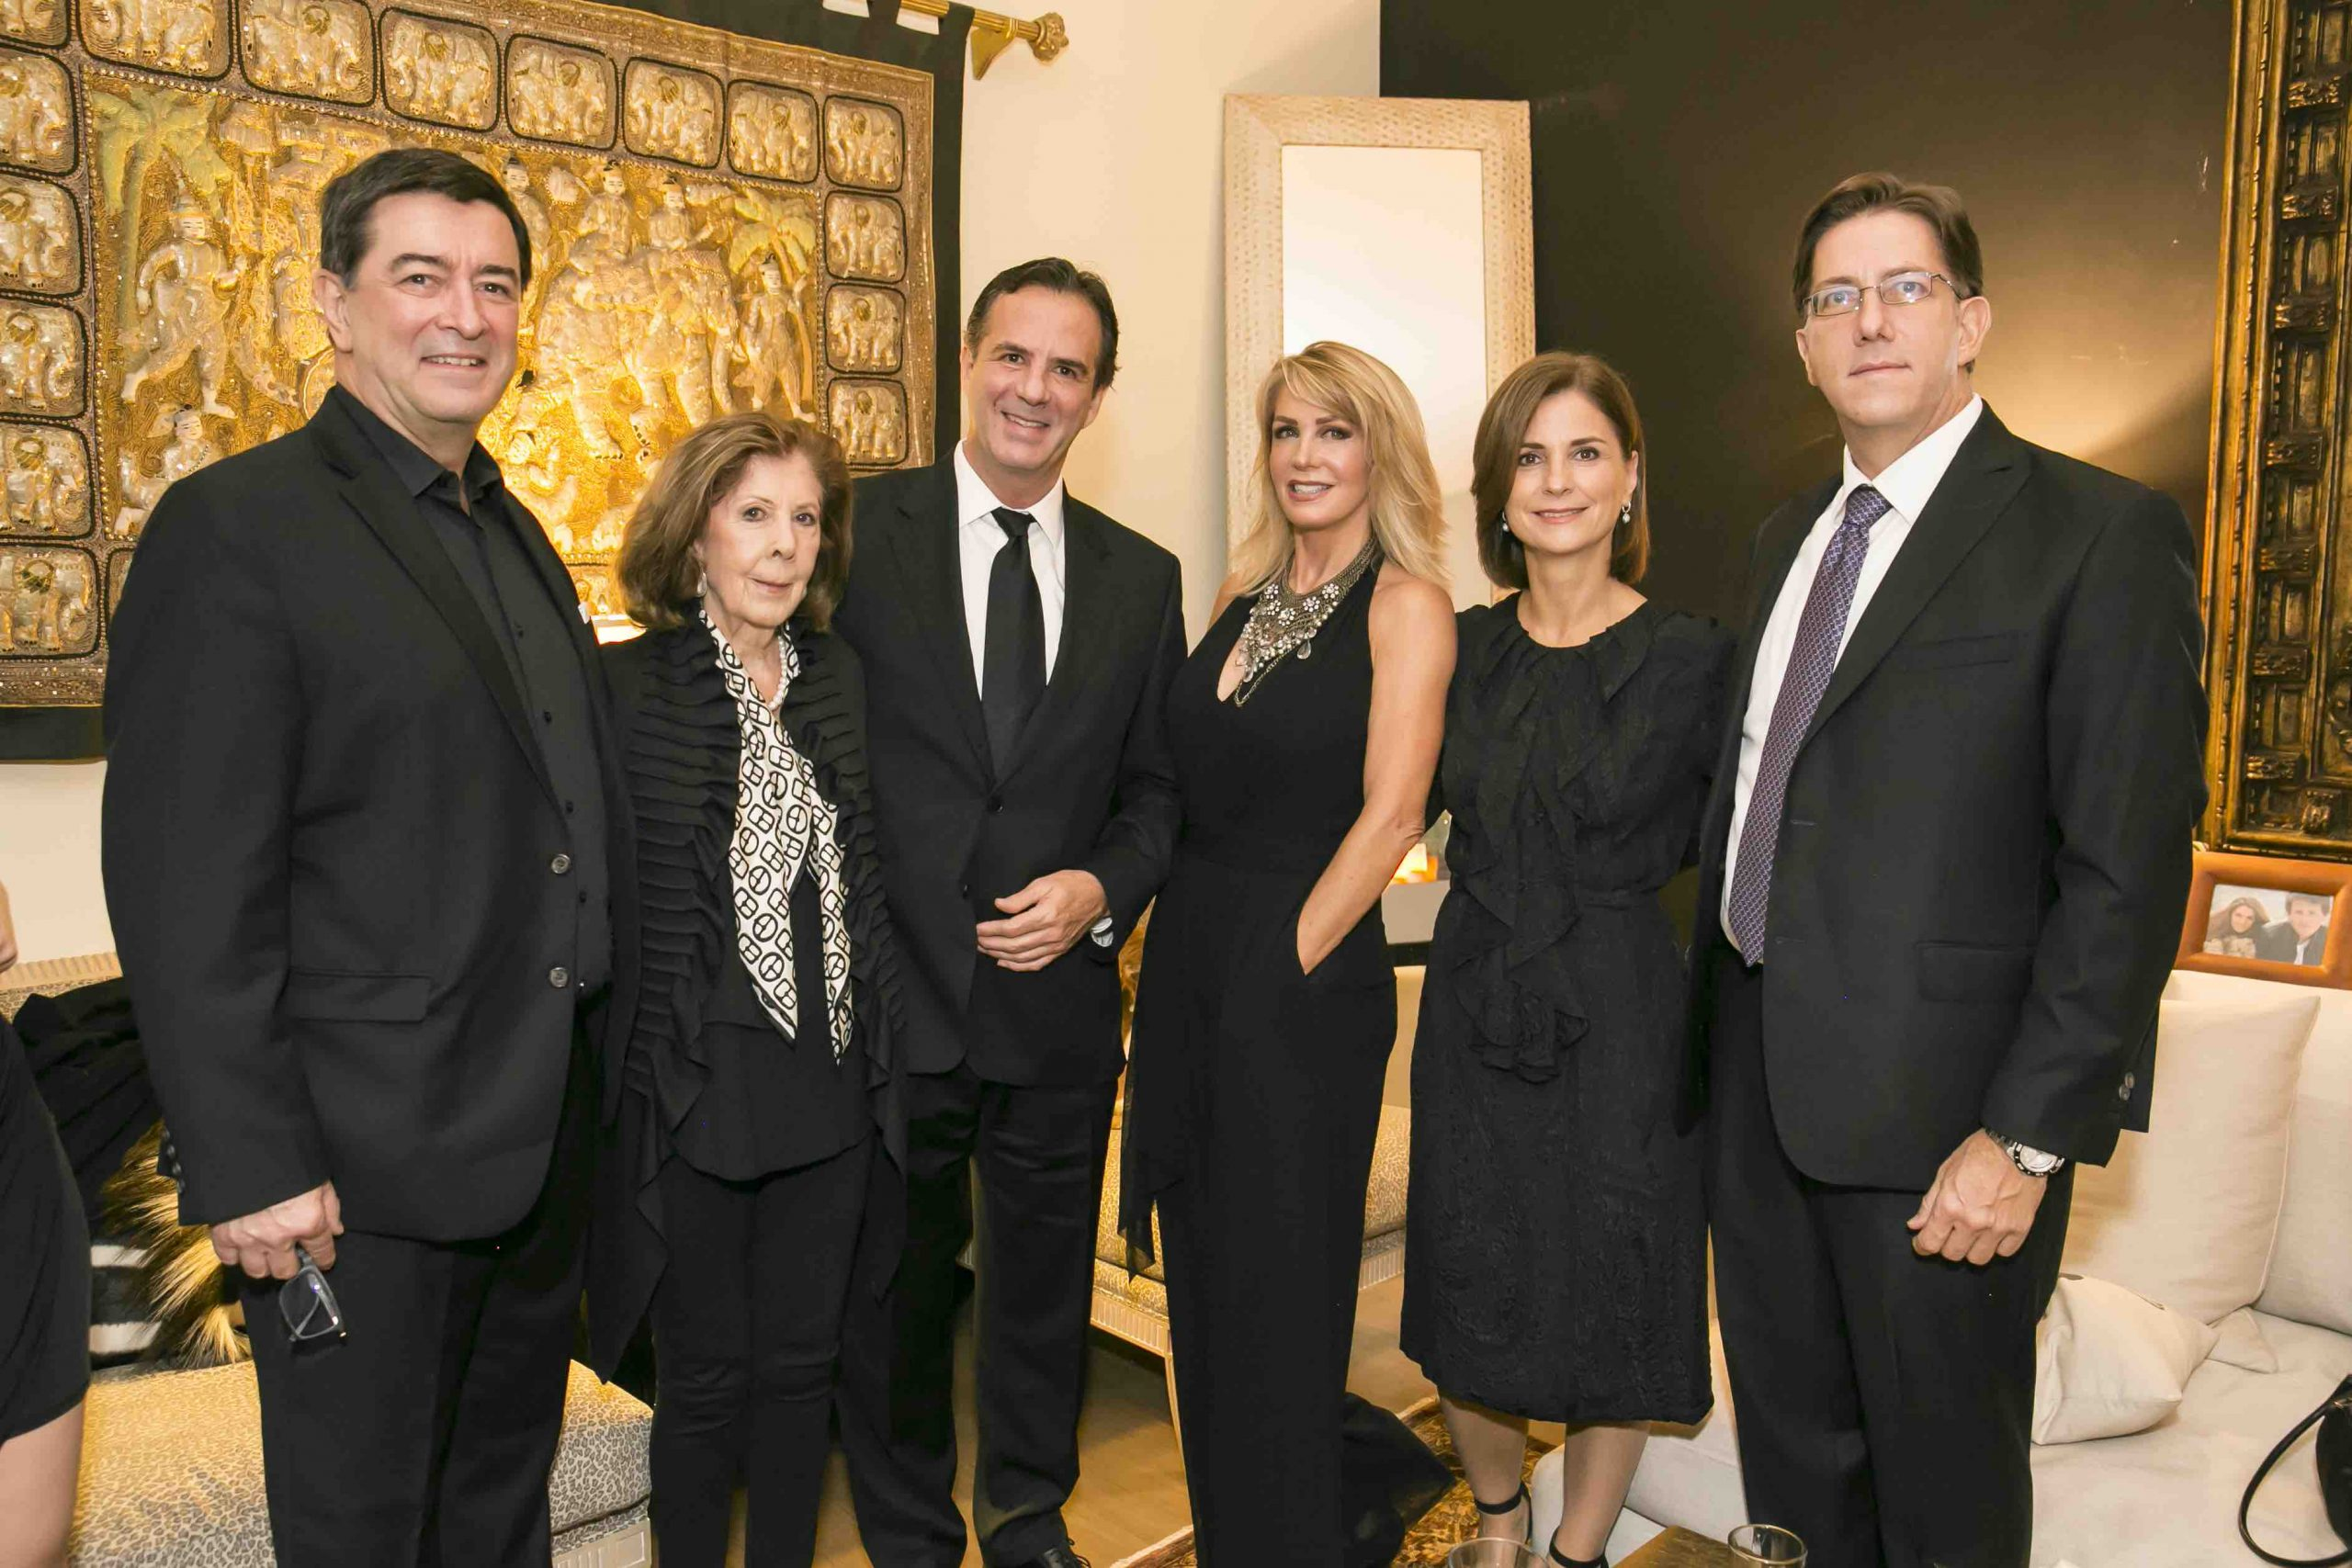 Alfred Pepping, María Eugenia-Valles, Frederick Pepping, Patsy Pepping, Claudia Desoche y Laurence Pepping